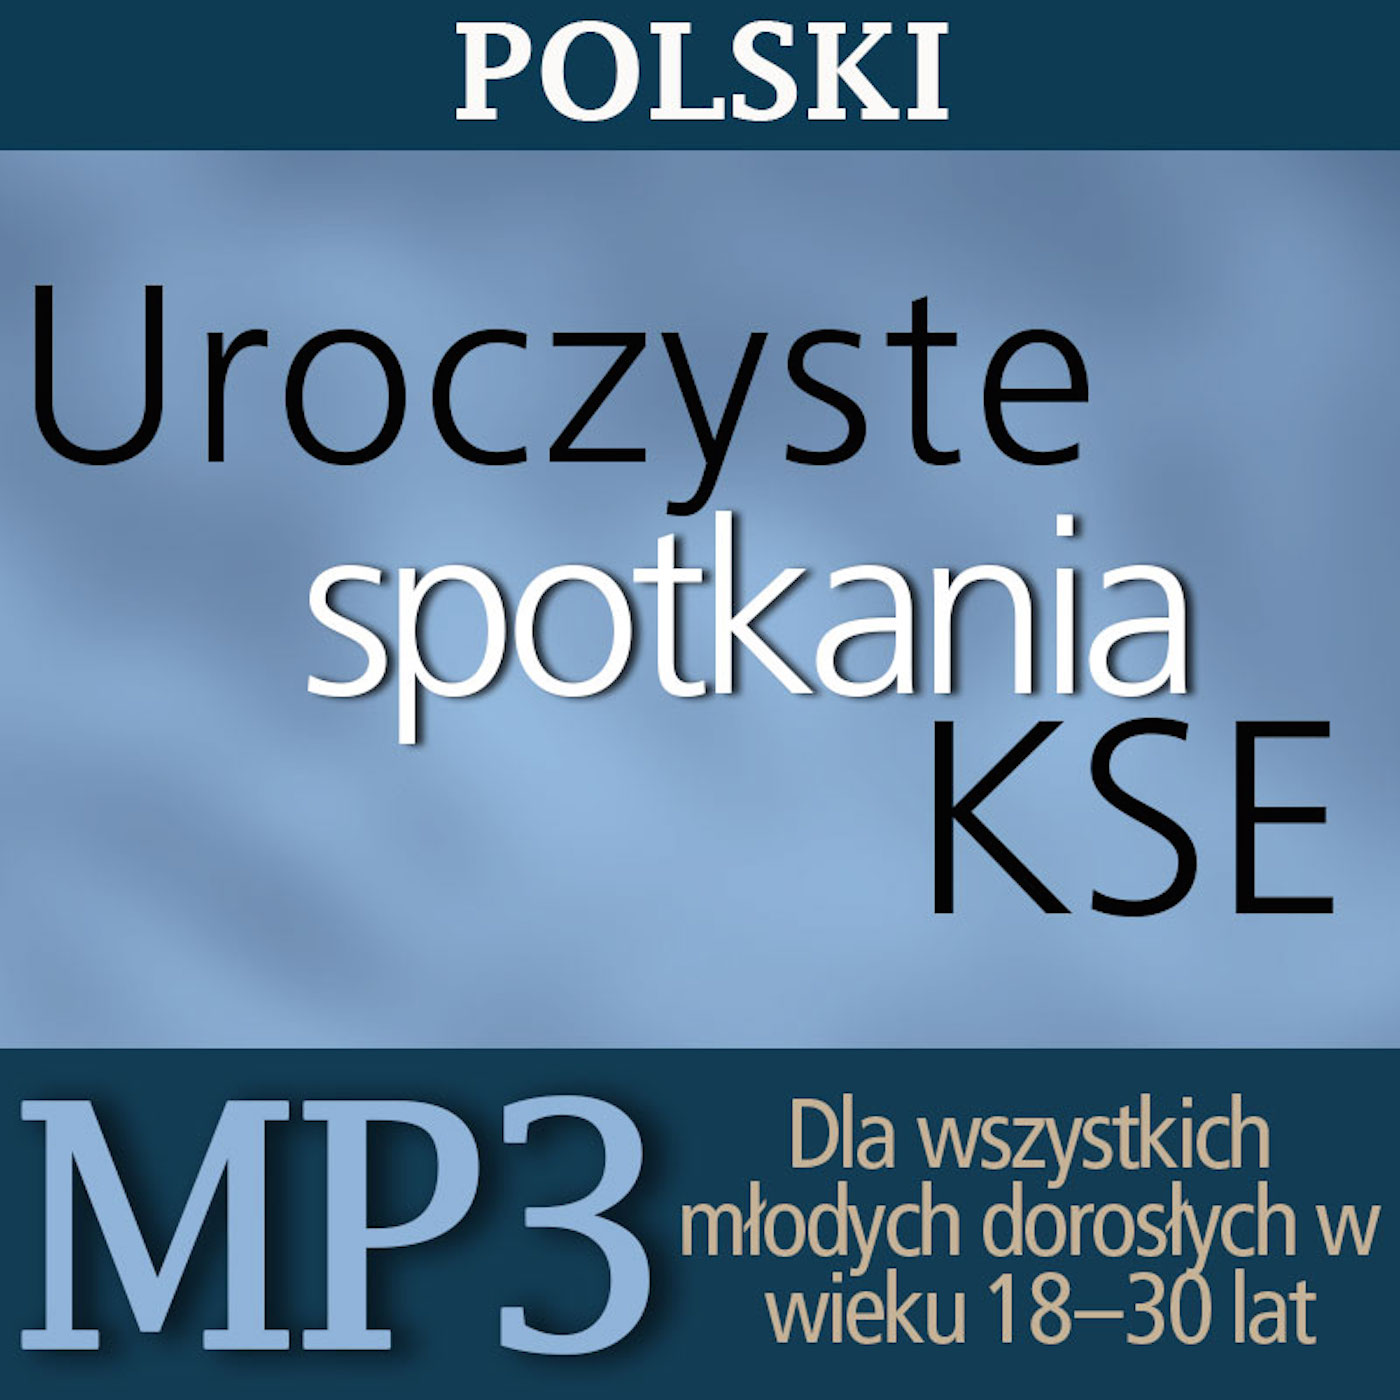 Worldwide Devotional For Young Adults | MP3 | POLISH